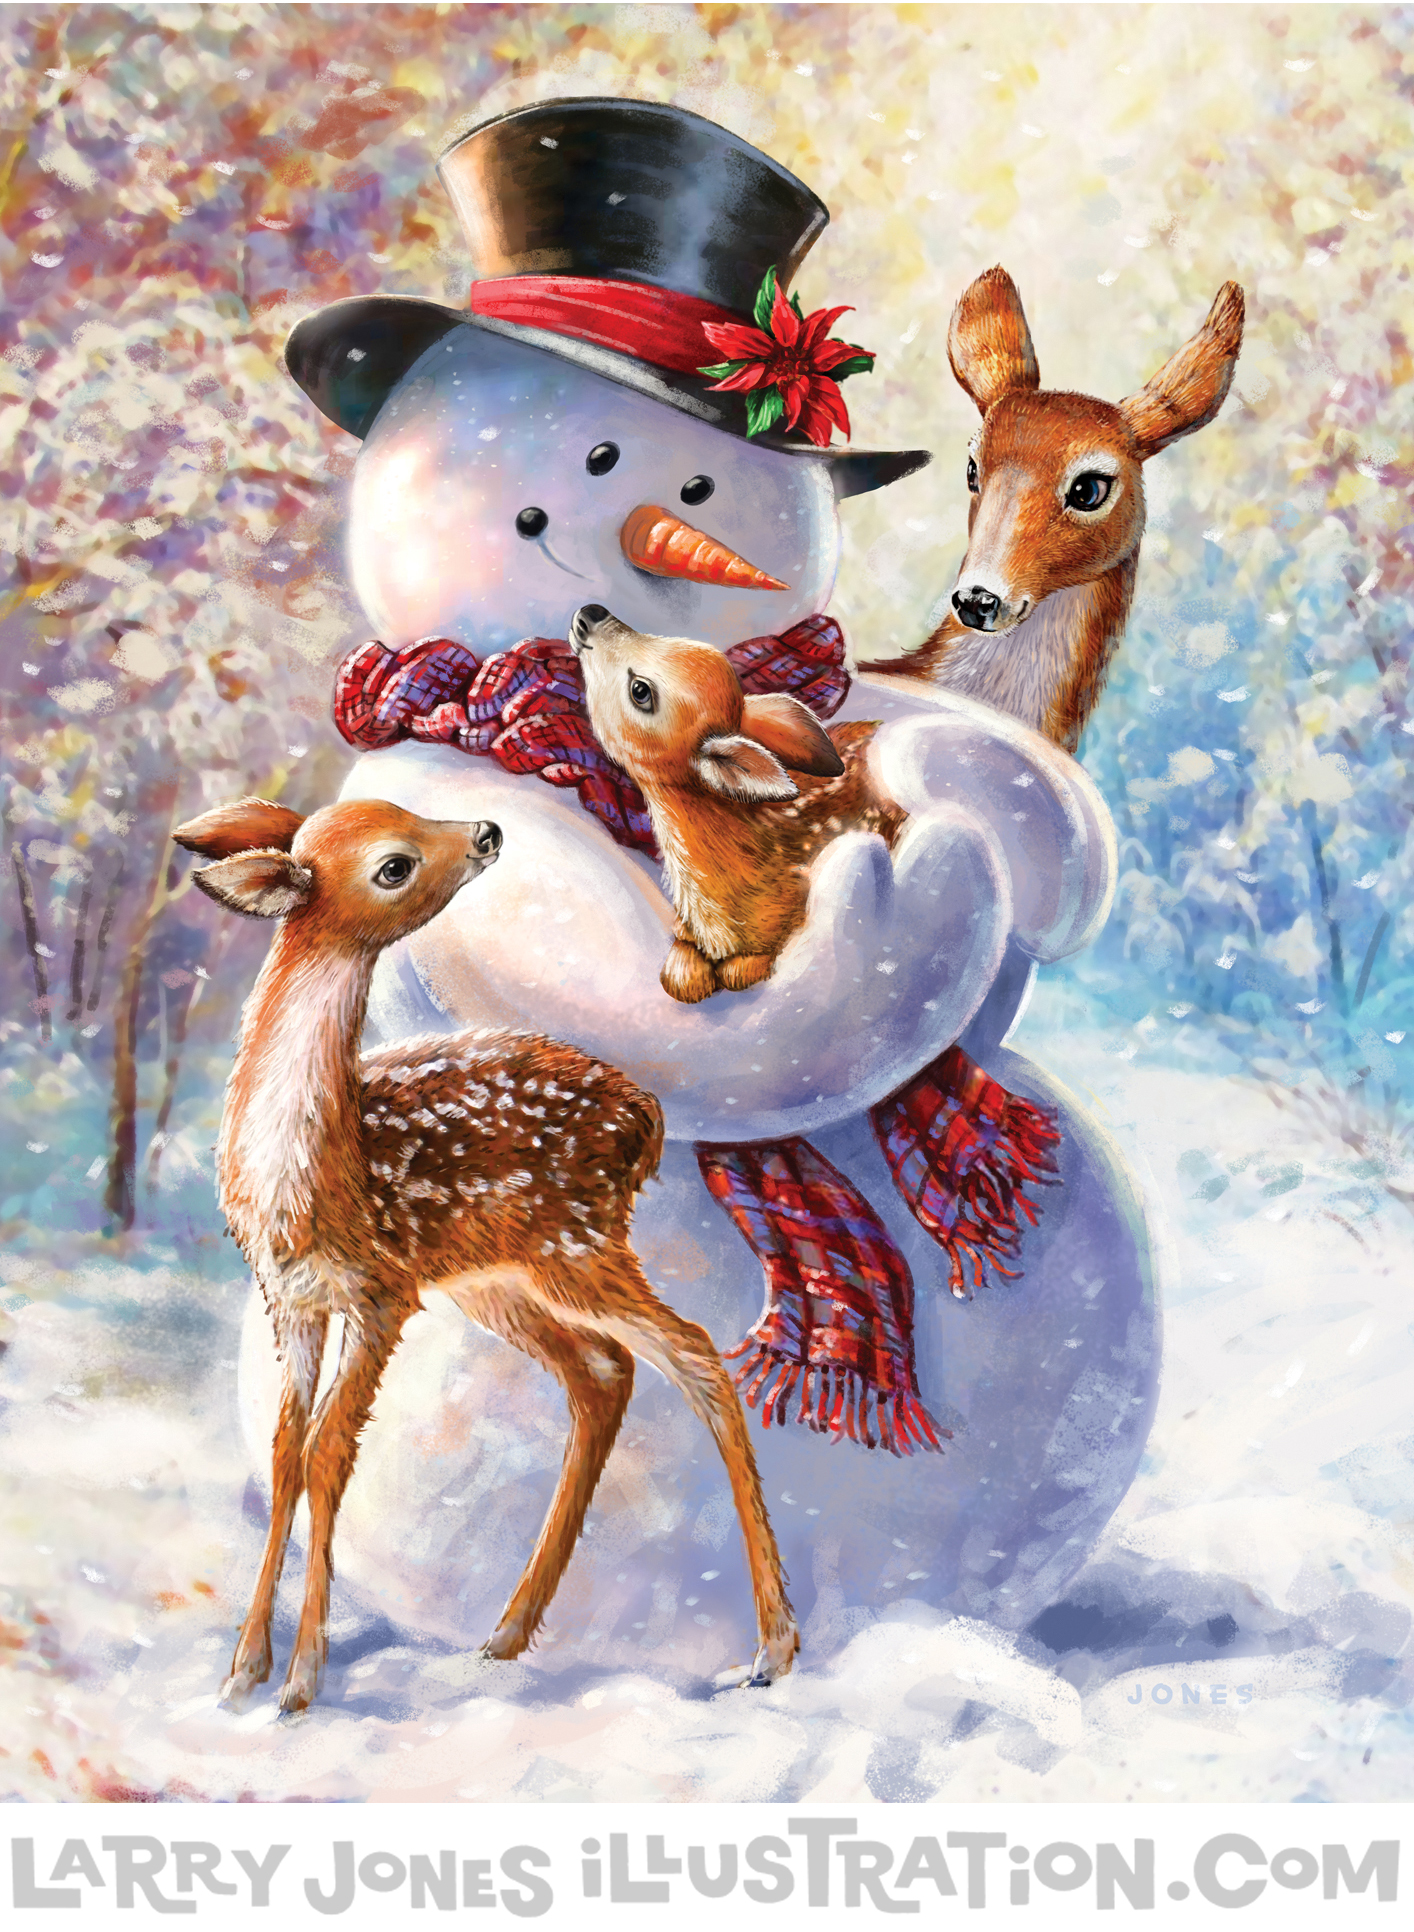 snowman-deer-illustration.jpg